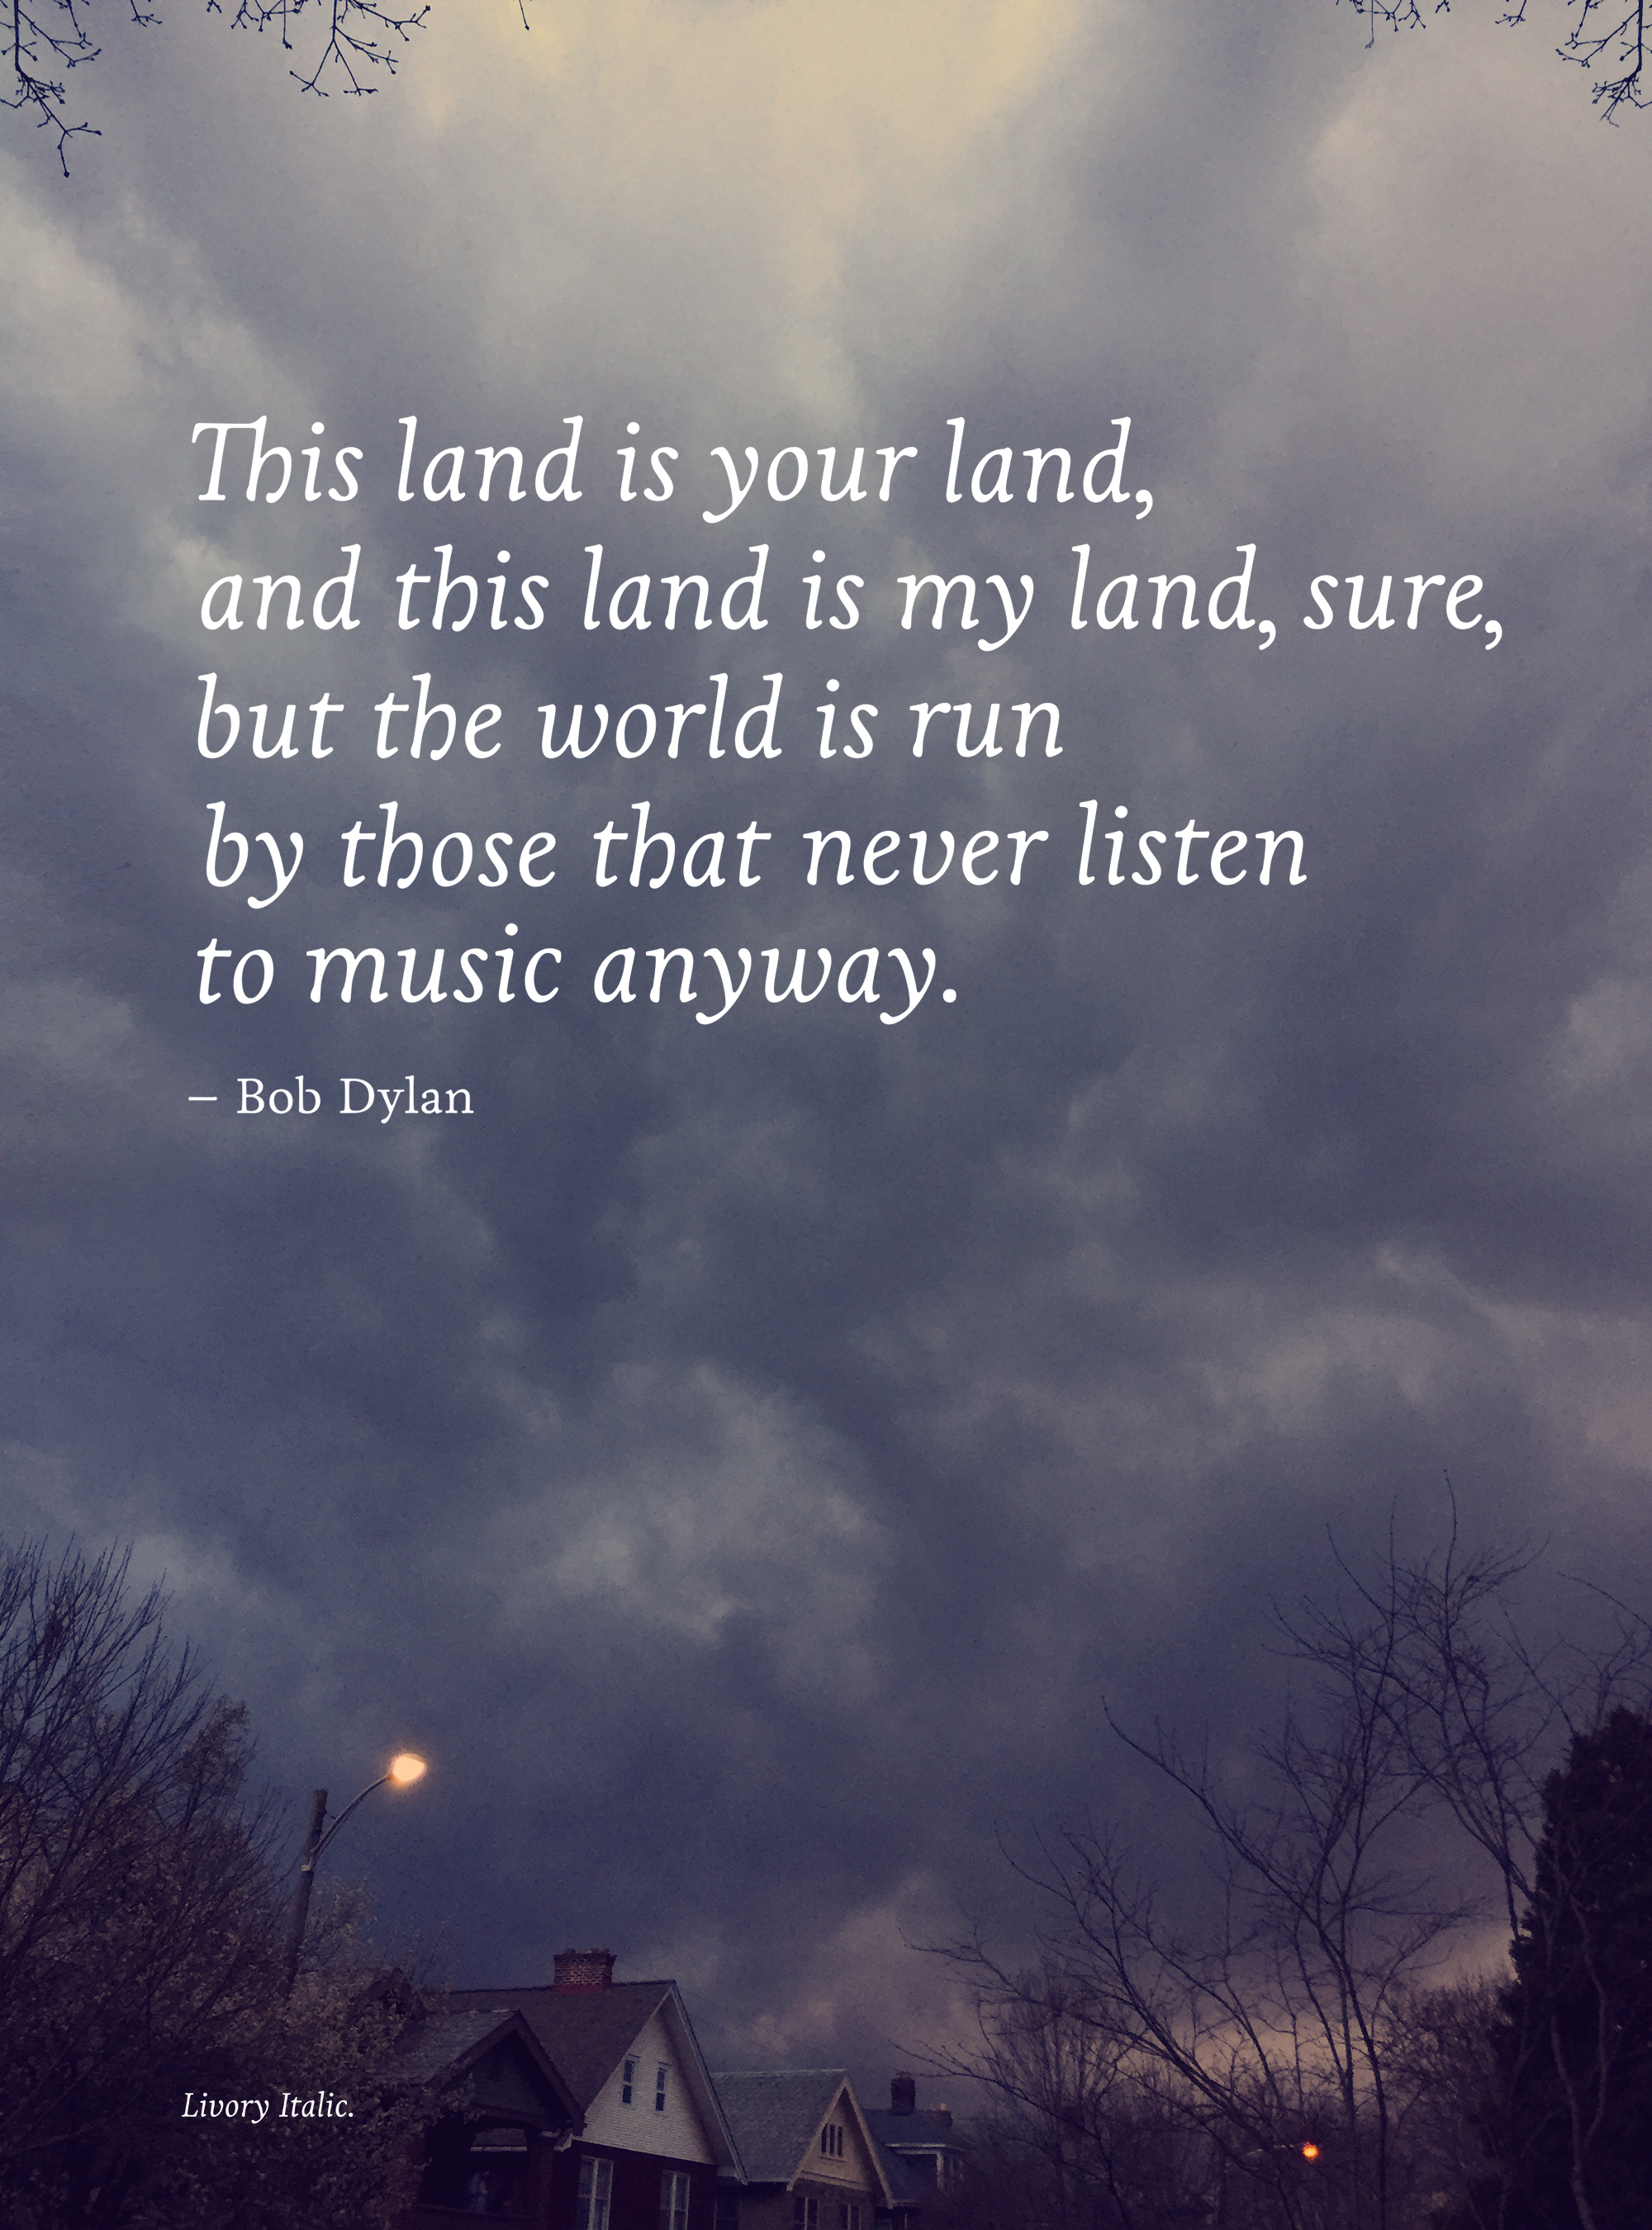 Our Land - Todd Roeth